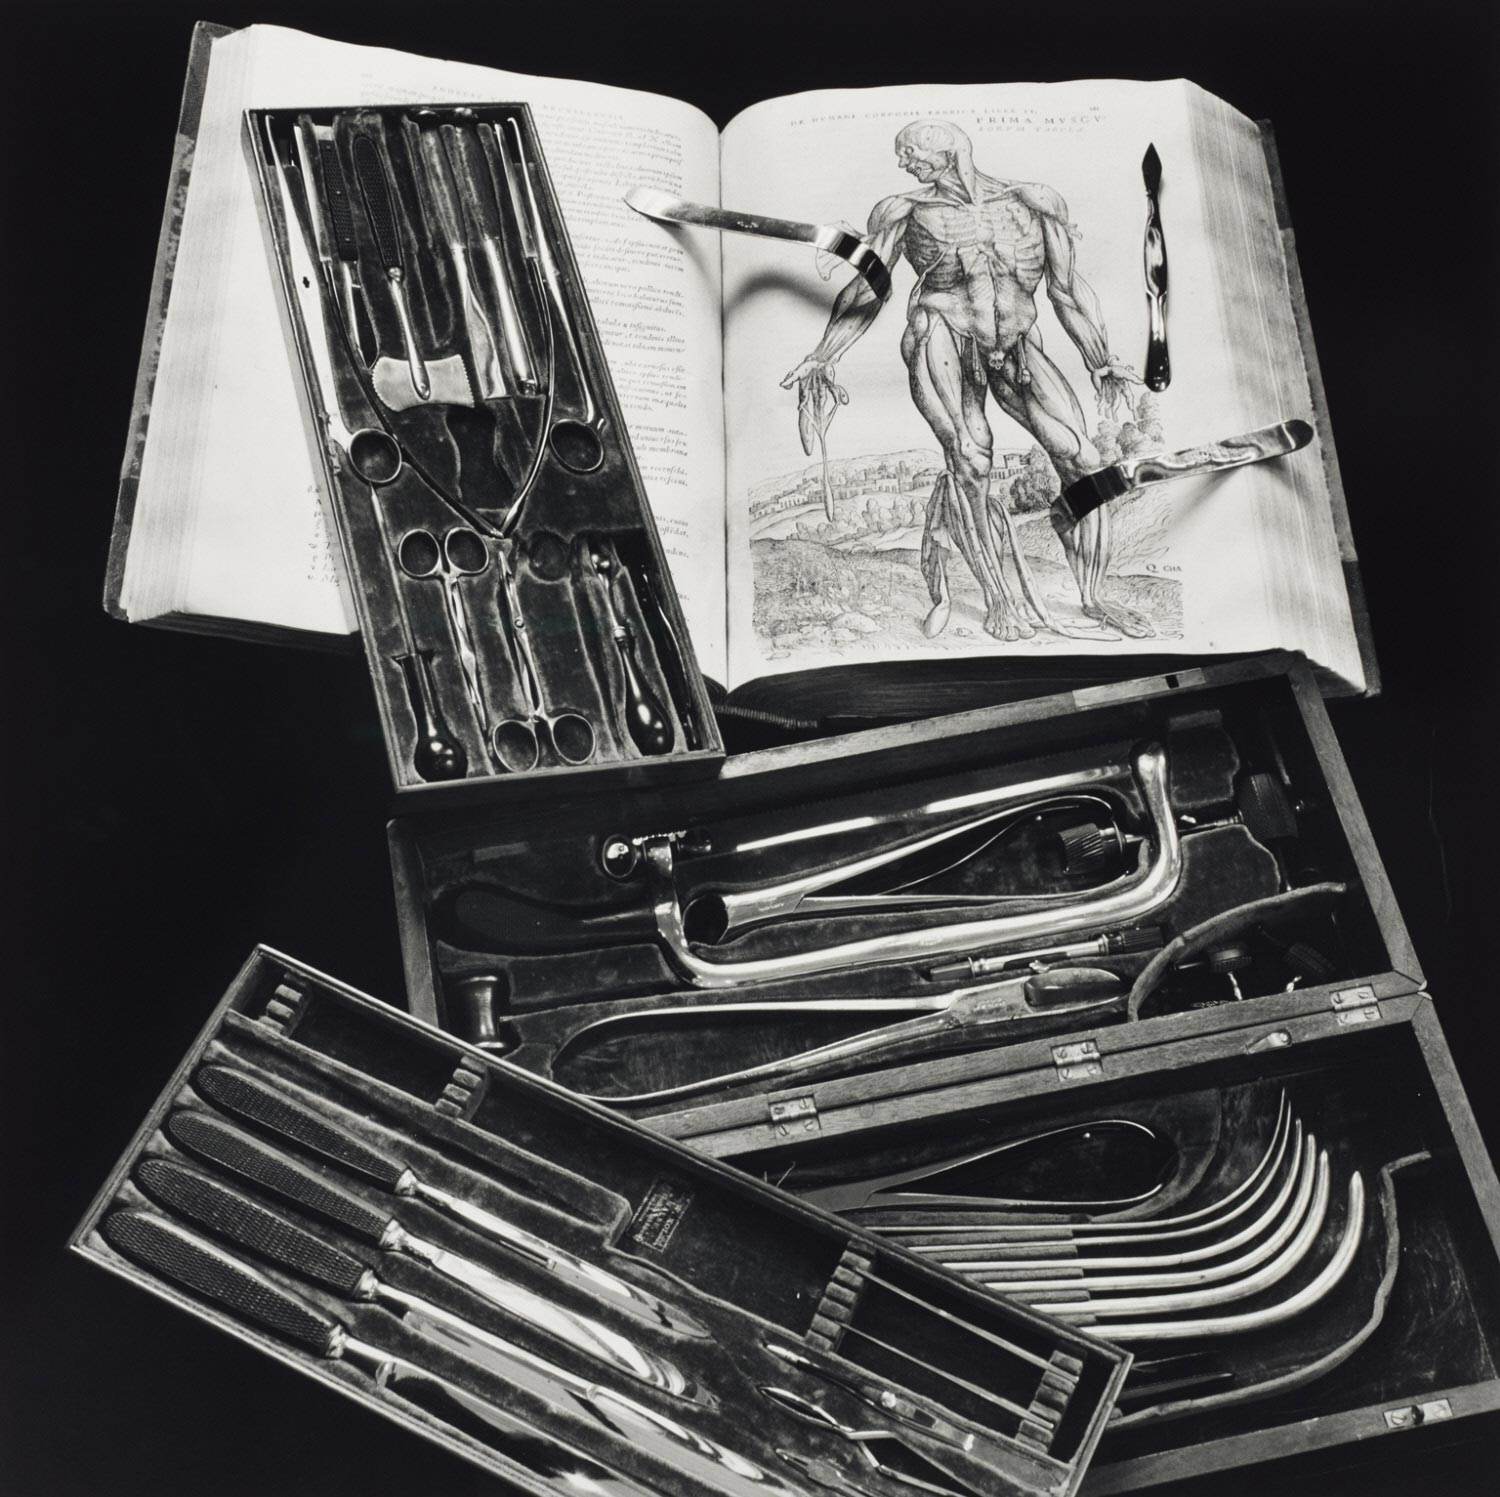 Civil War Surgeon's Field Kit and Anatomy Text (Vesalius)